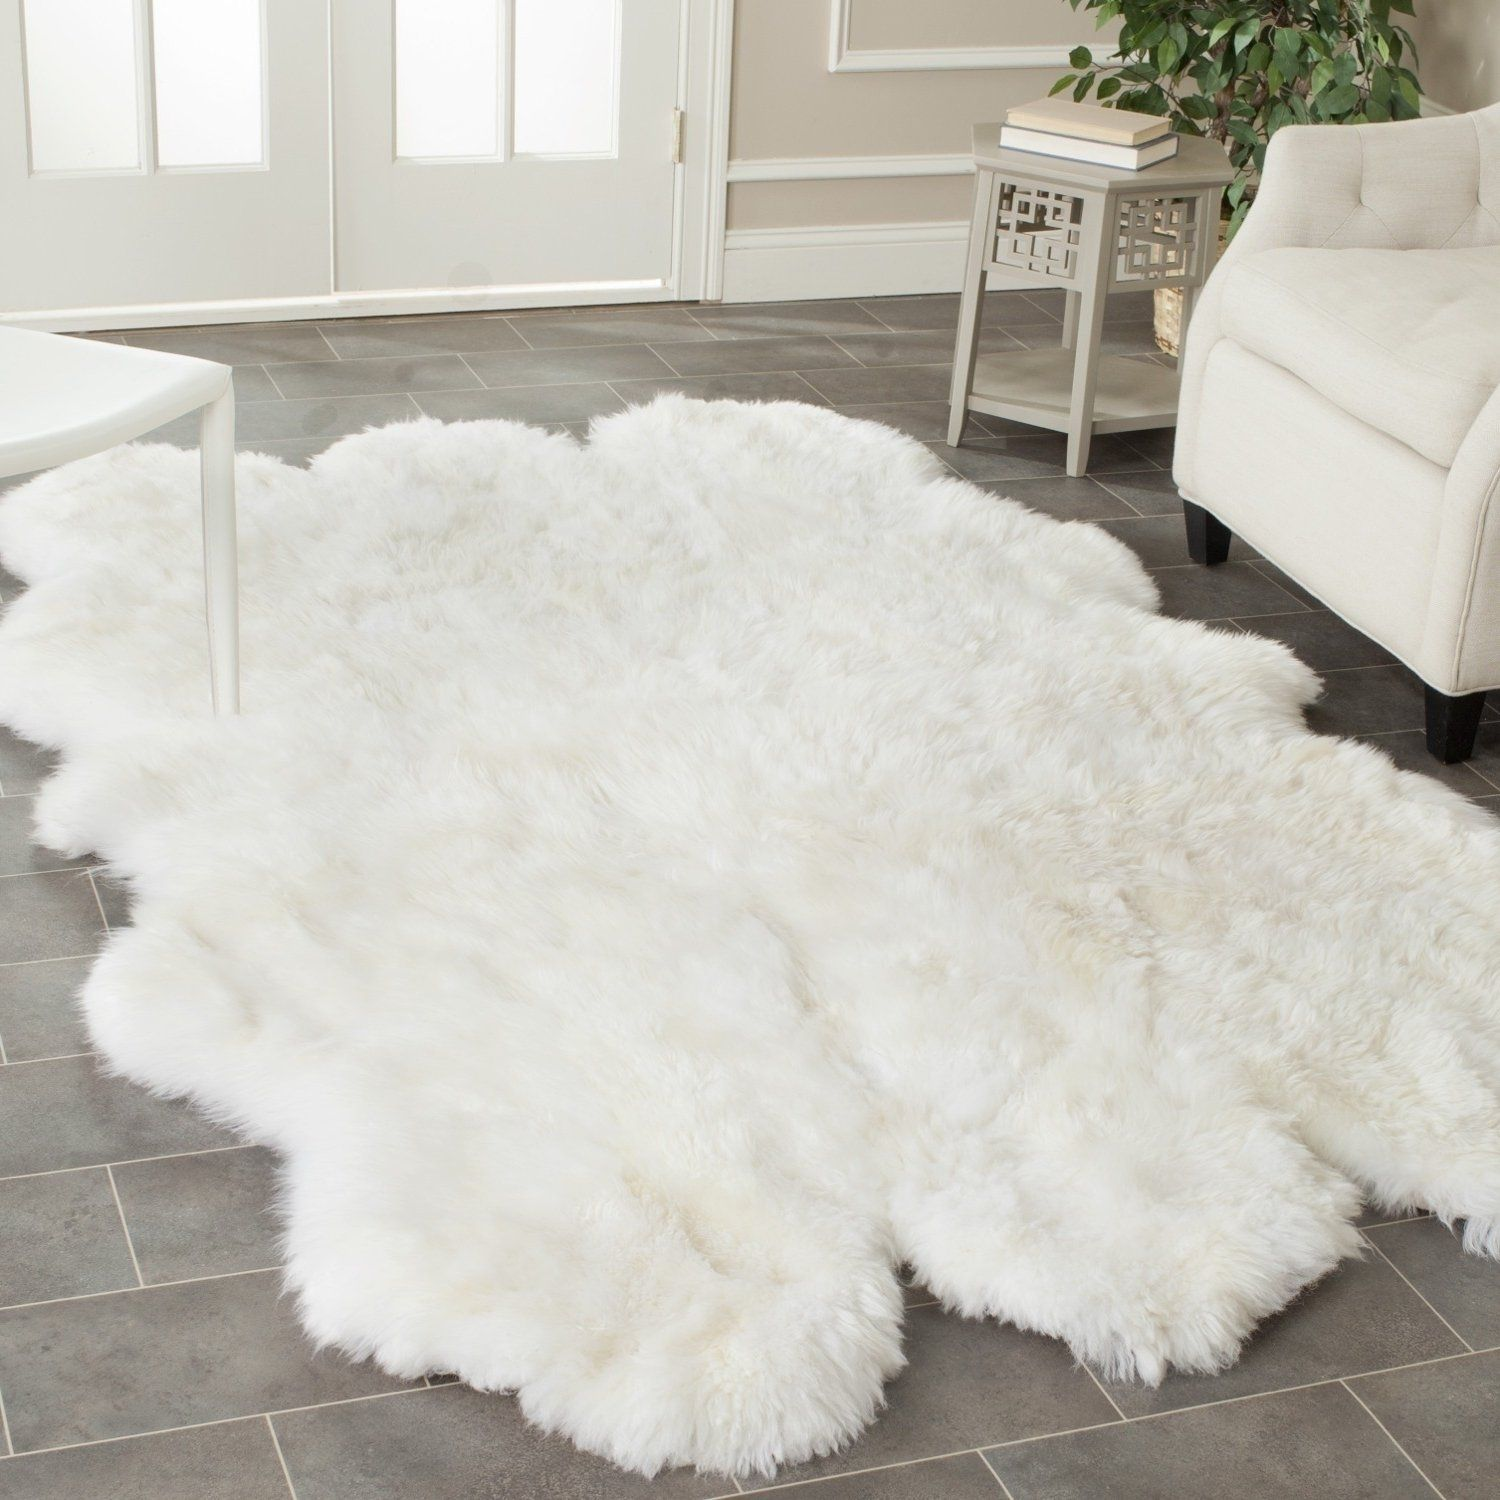 Ikea Faux Fur Rug Home Decors Collection With Regard To Faux Fur Rug How To Make A Faux Fur Rug Ikea Sheepskin Rug Faux Sheepskin Rug White Fur Rug